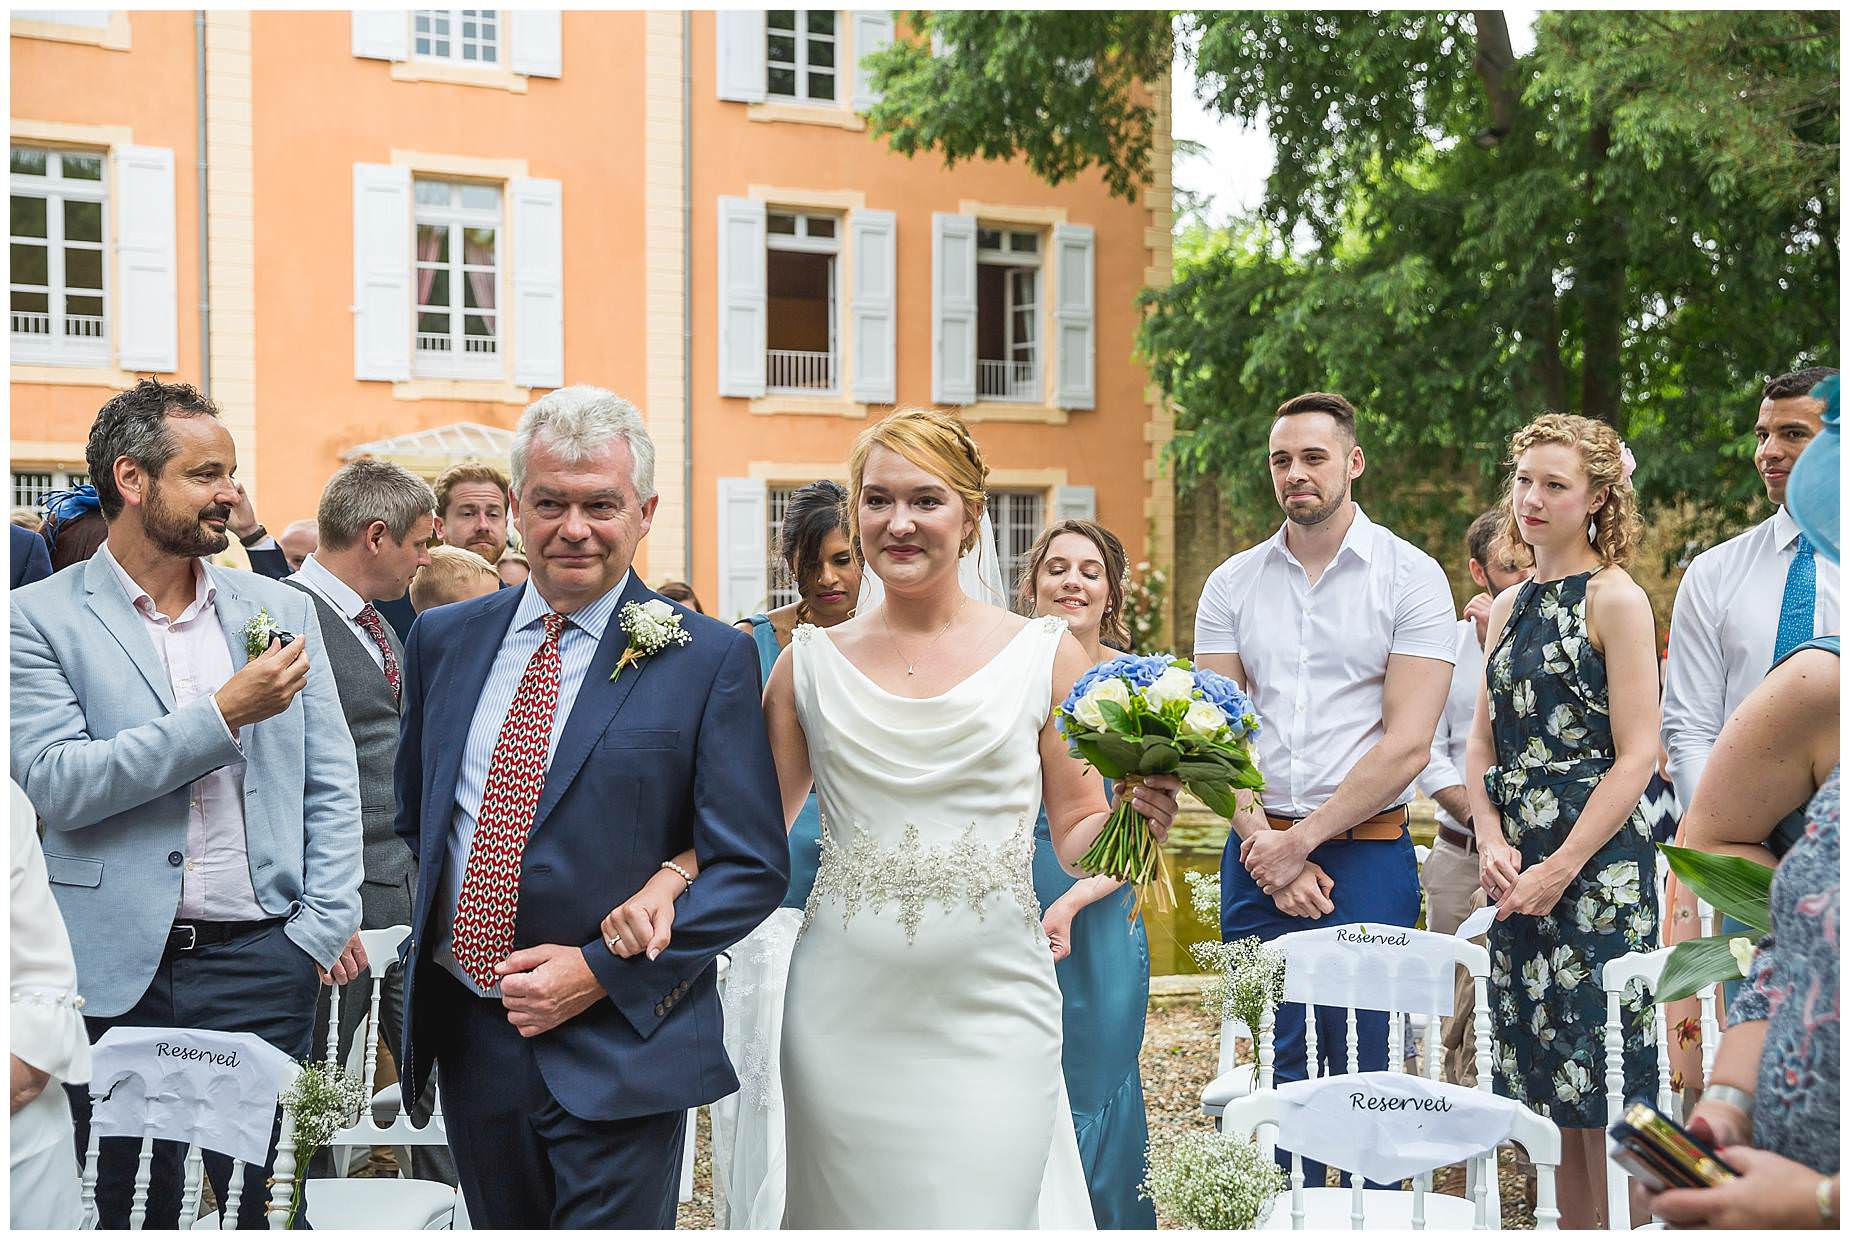 Walking down the aisle at Chateau Roquelune